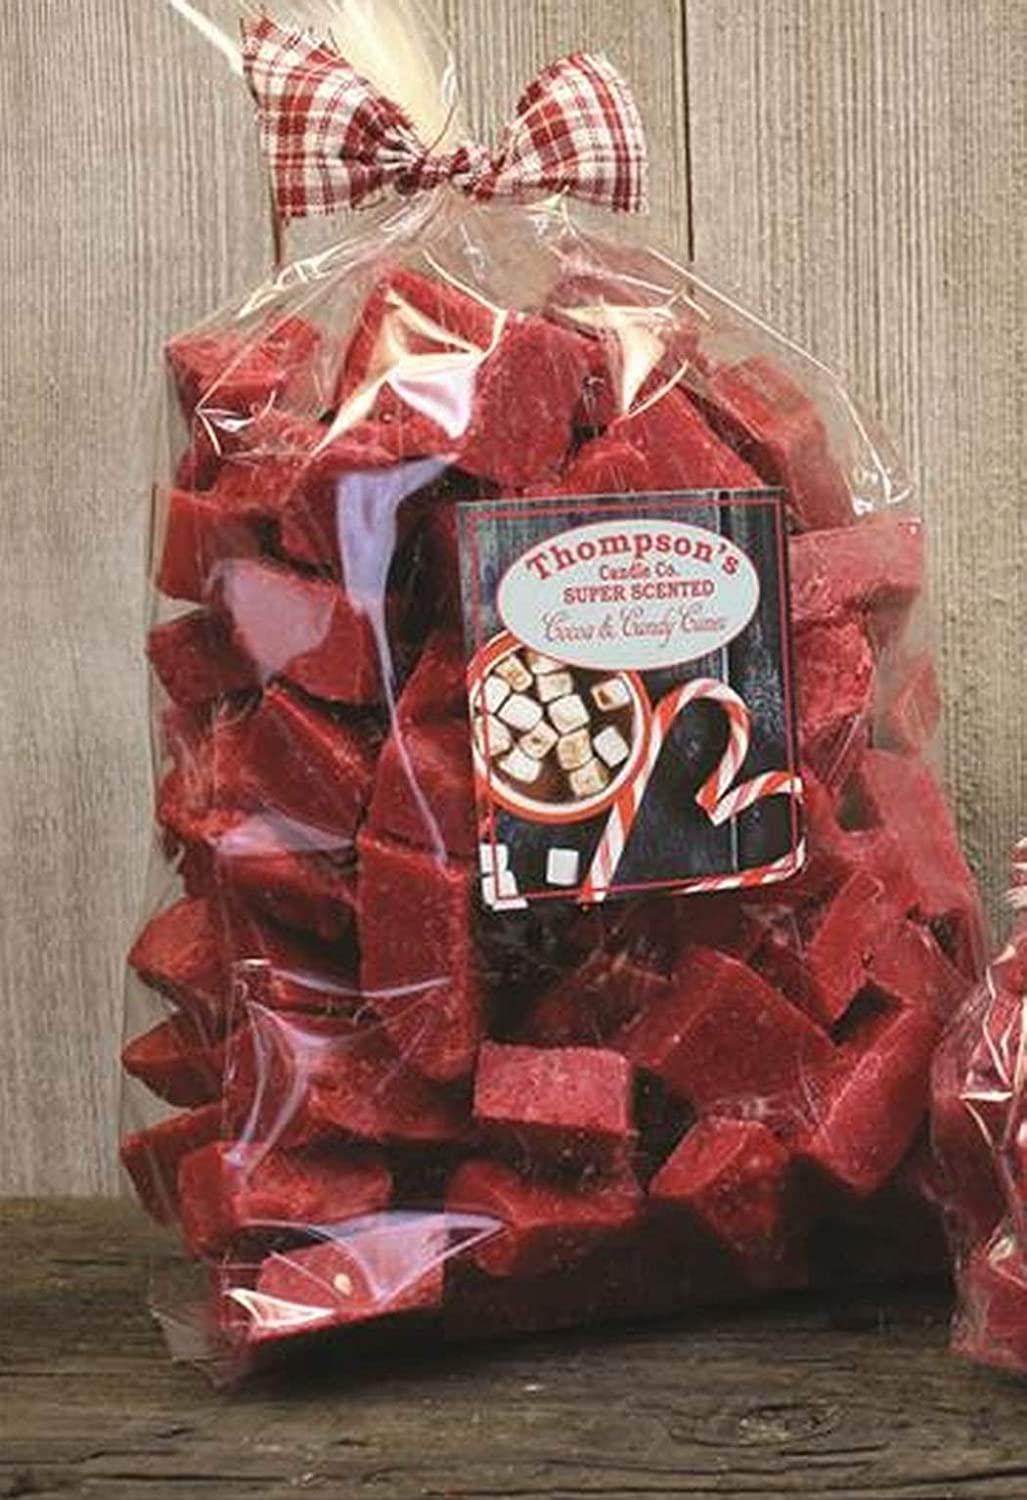 Super Scented Crumbles//Wax Melt 32 oz Cocoa /& Candy Canes Thompsons Candle Co